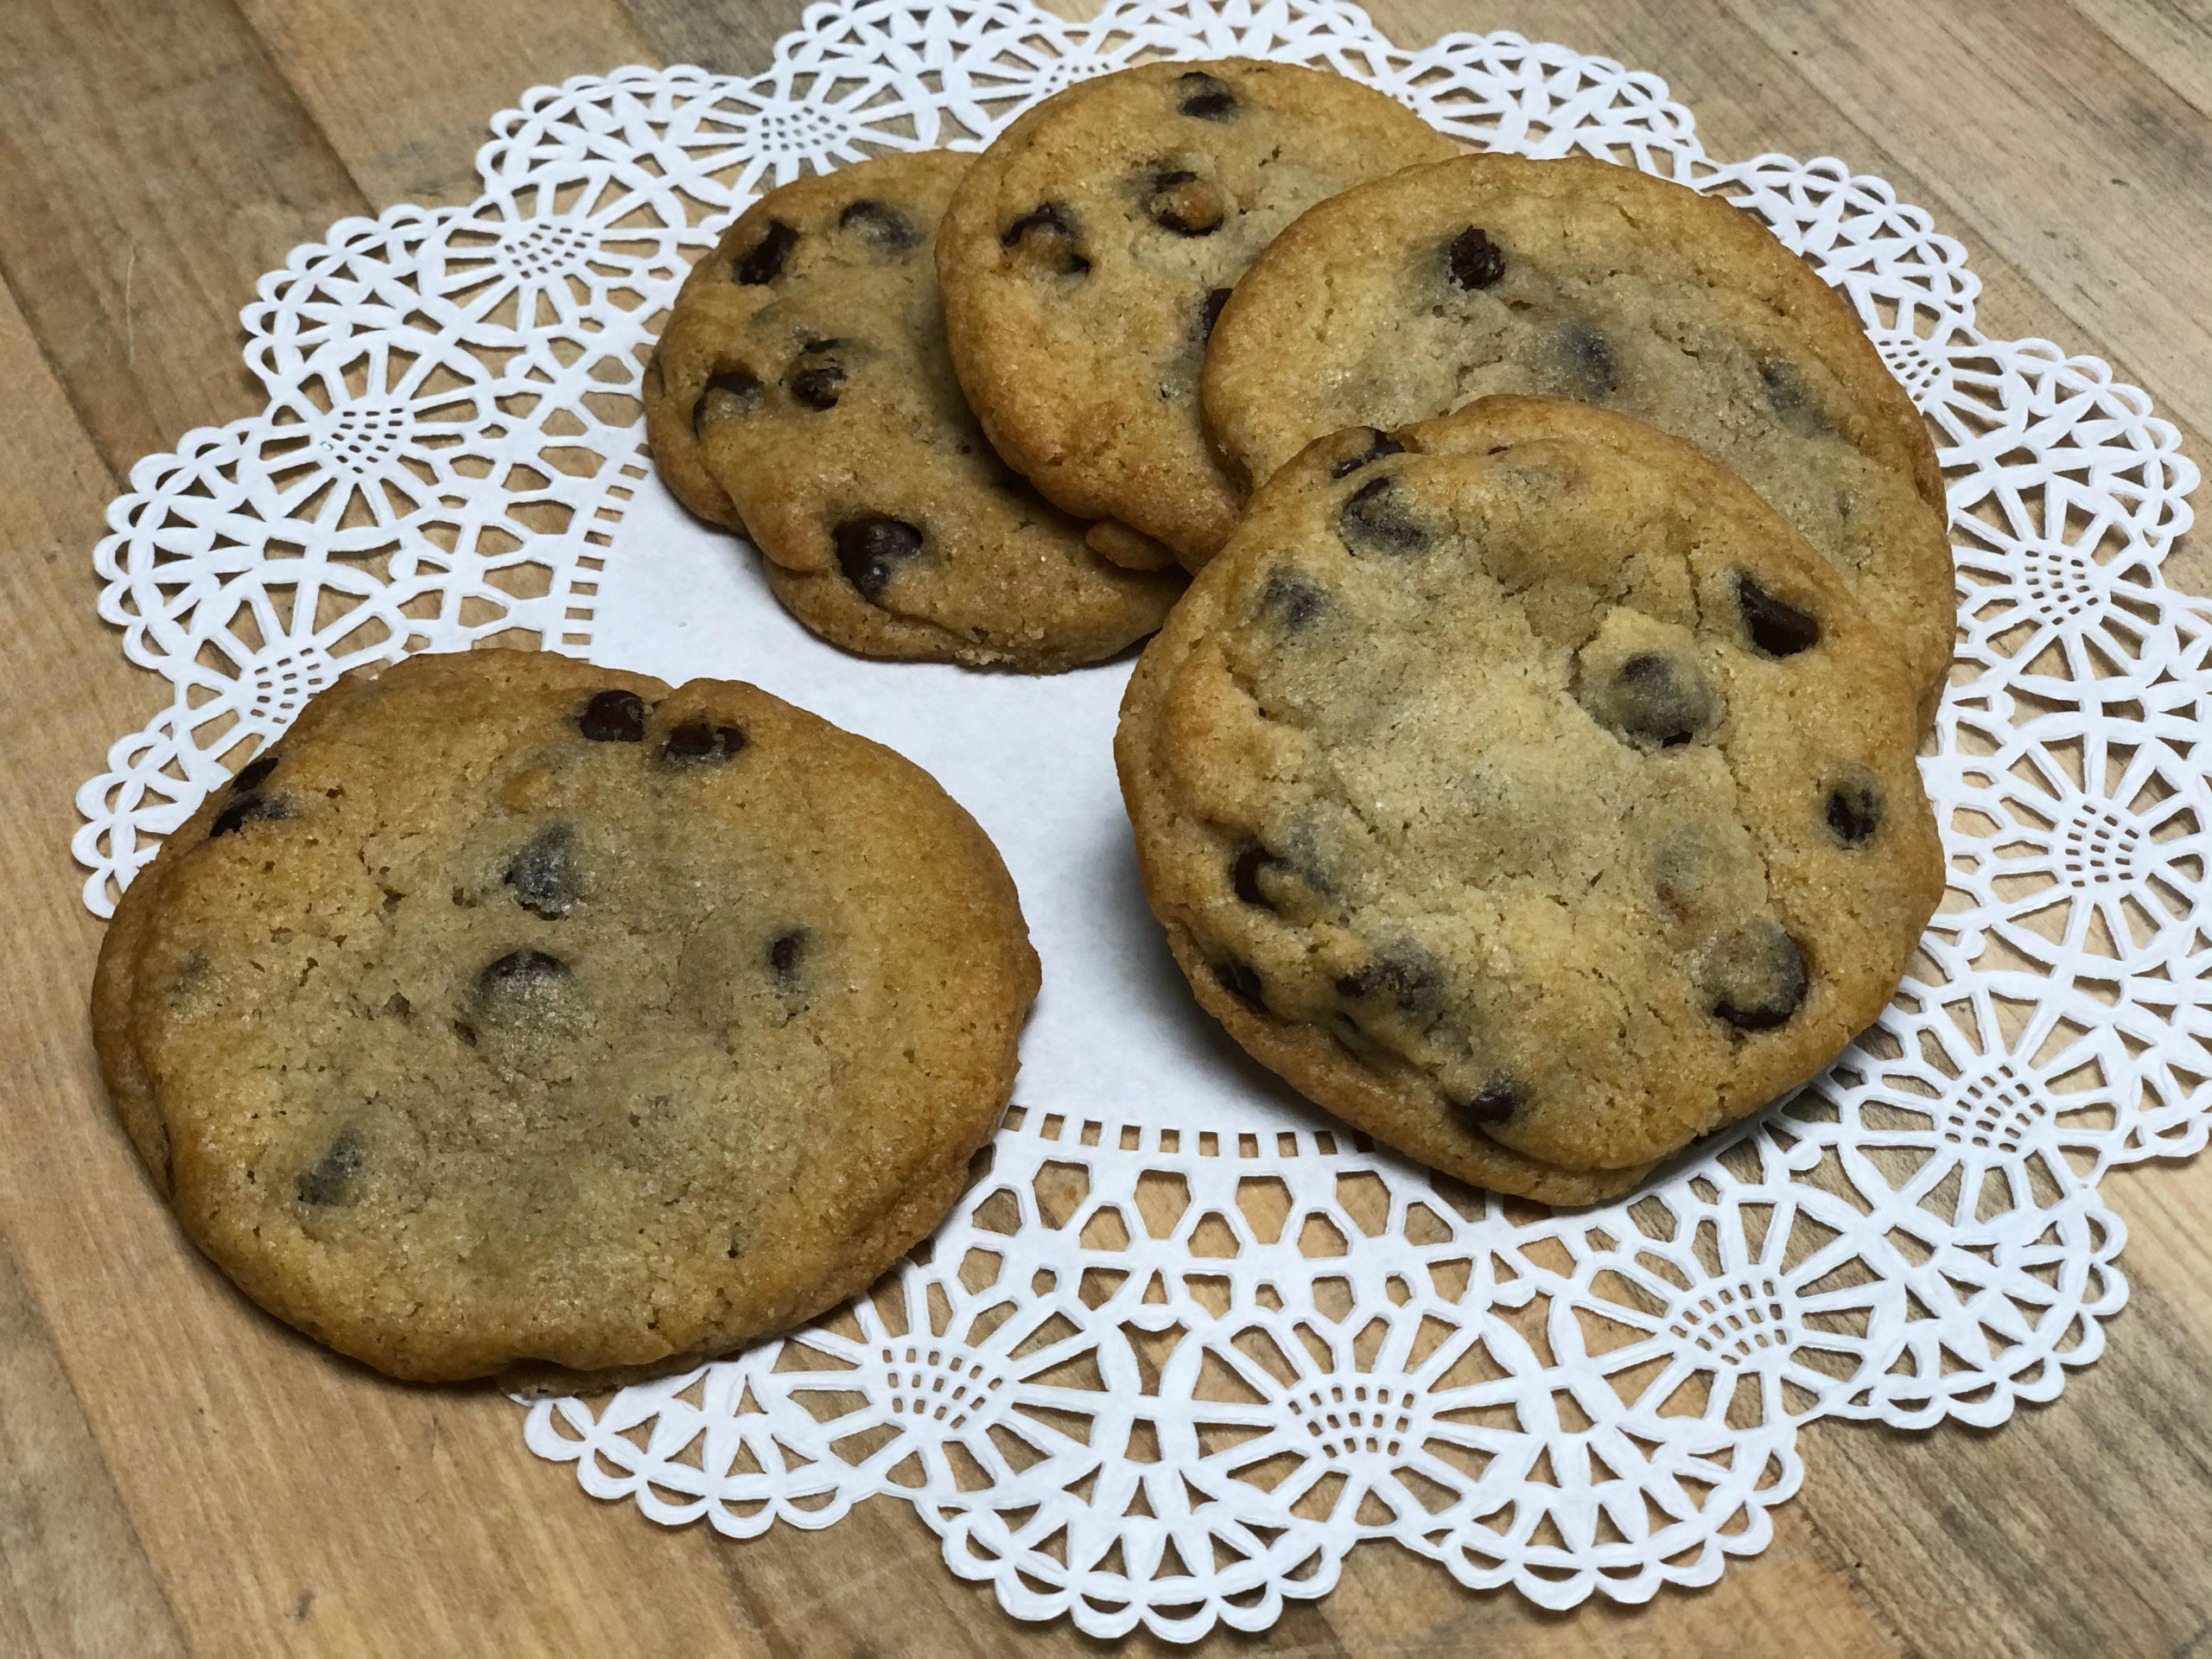 National Homemade Cookies Day Barstow S Dairy Store And Bakery